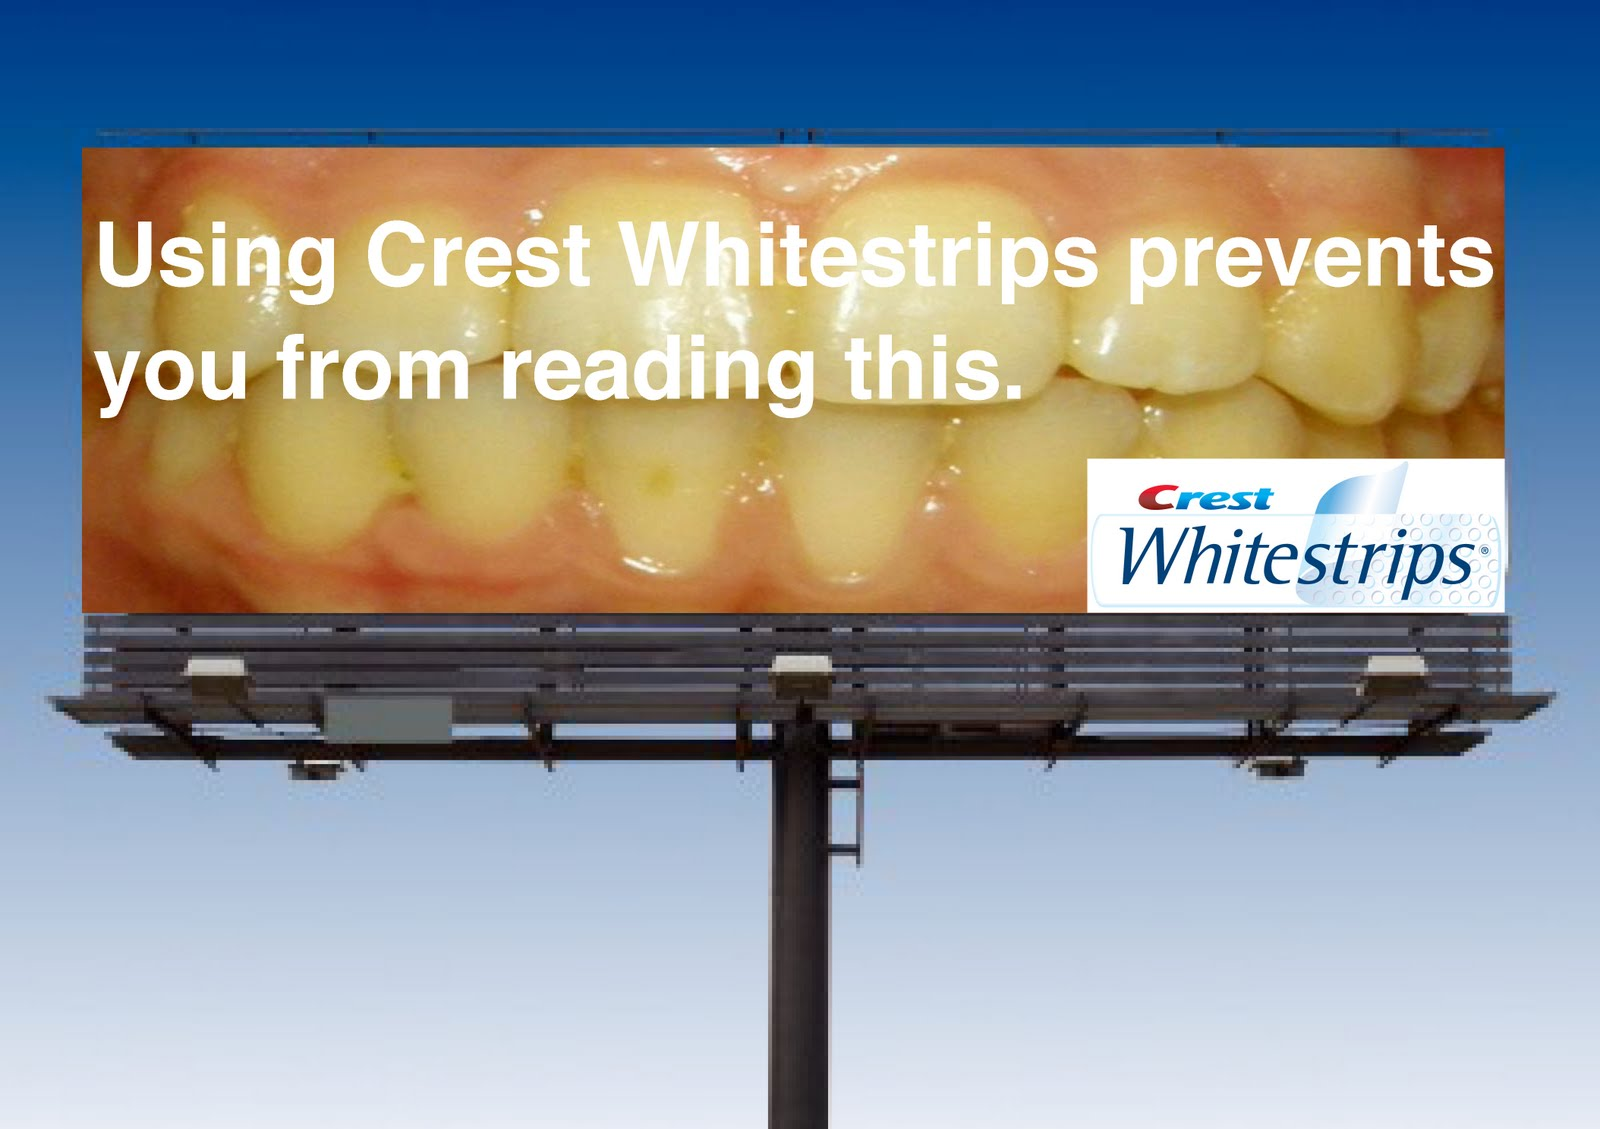 crest-whitestrips-billboard-ad6